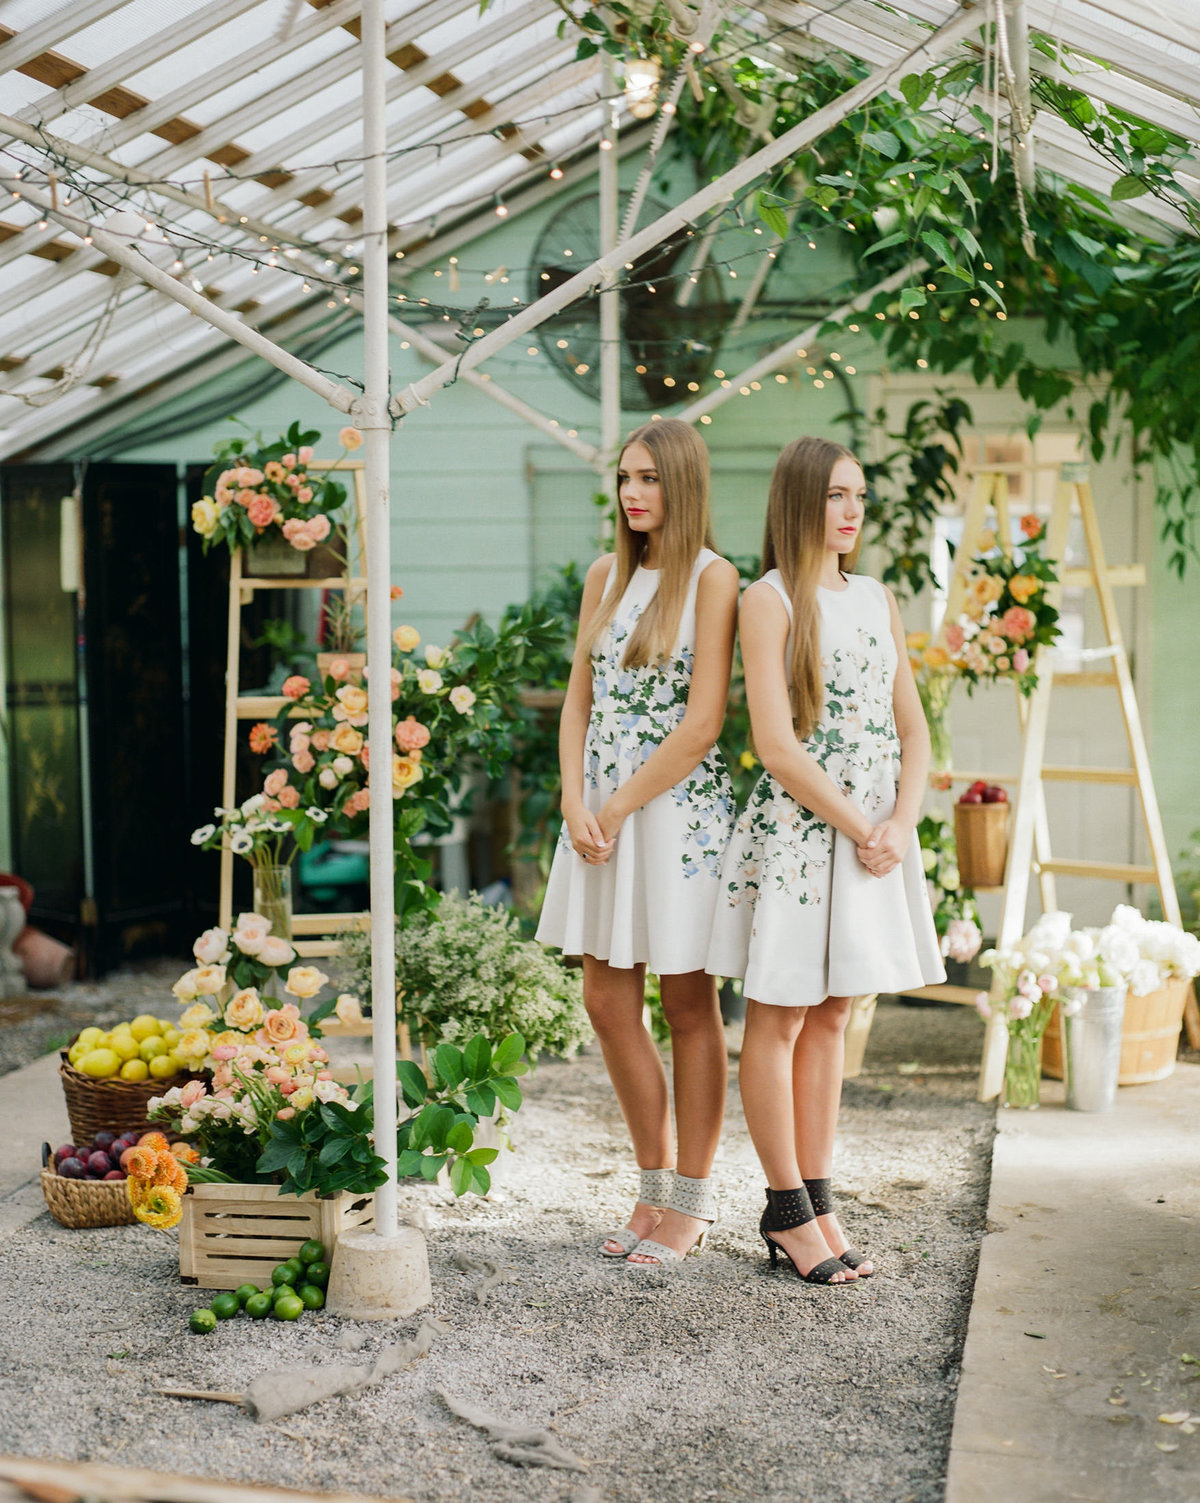 WhimsicalGreenhouseFashion-0012-Shieldmaidens_Film_043-474490190006